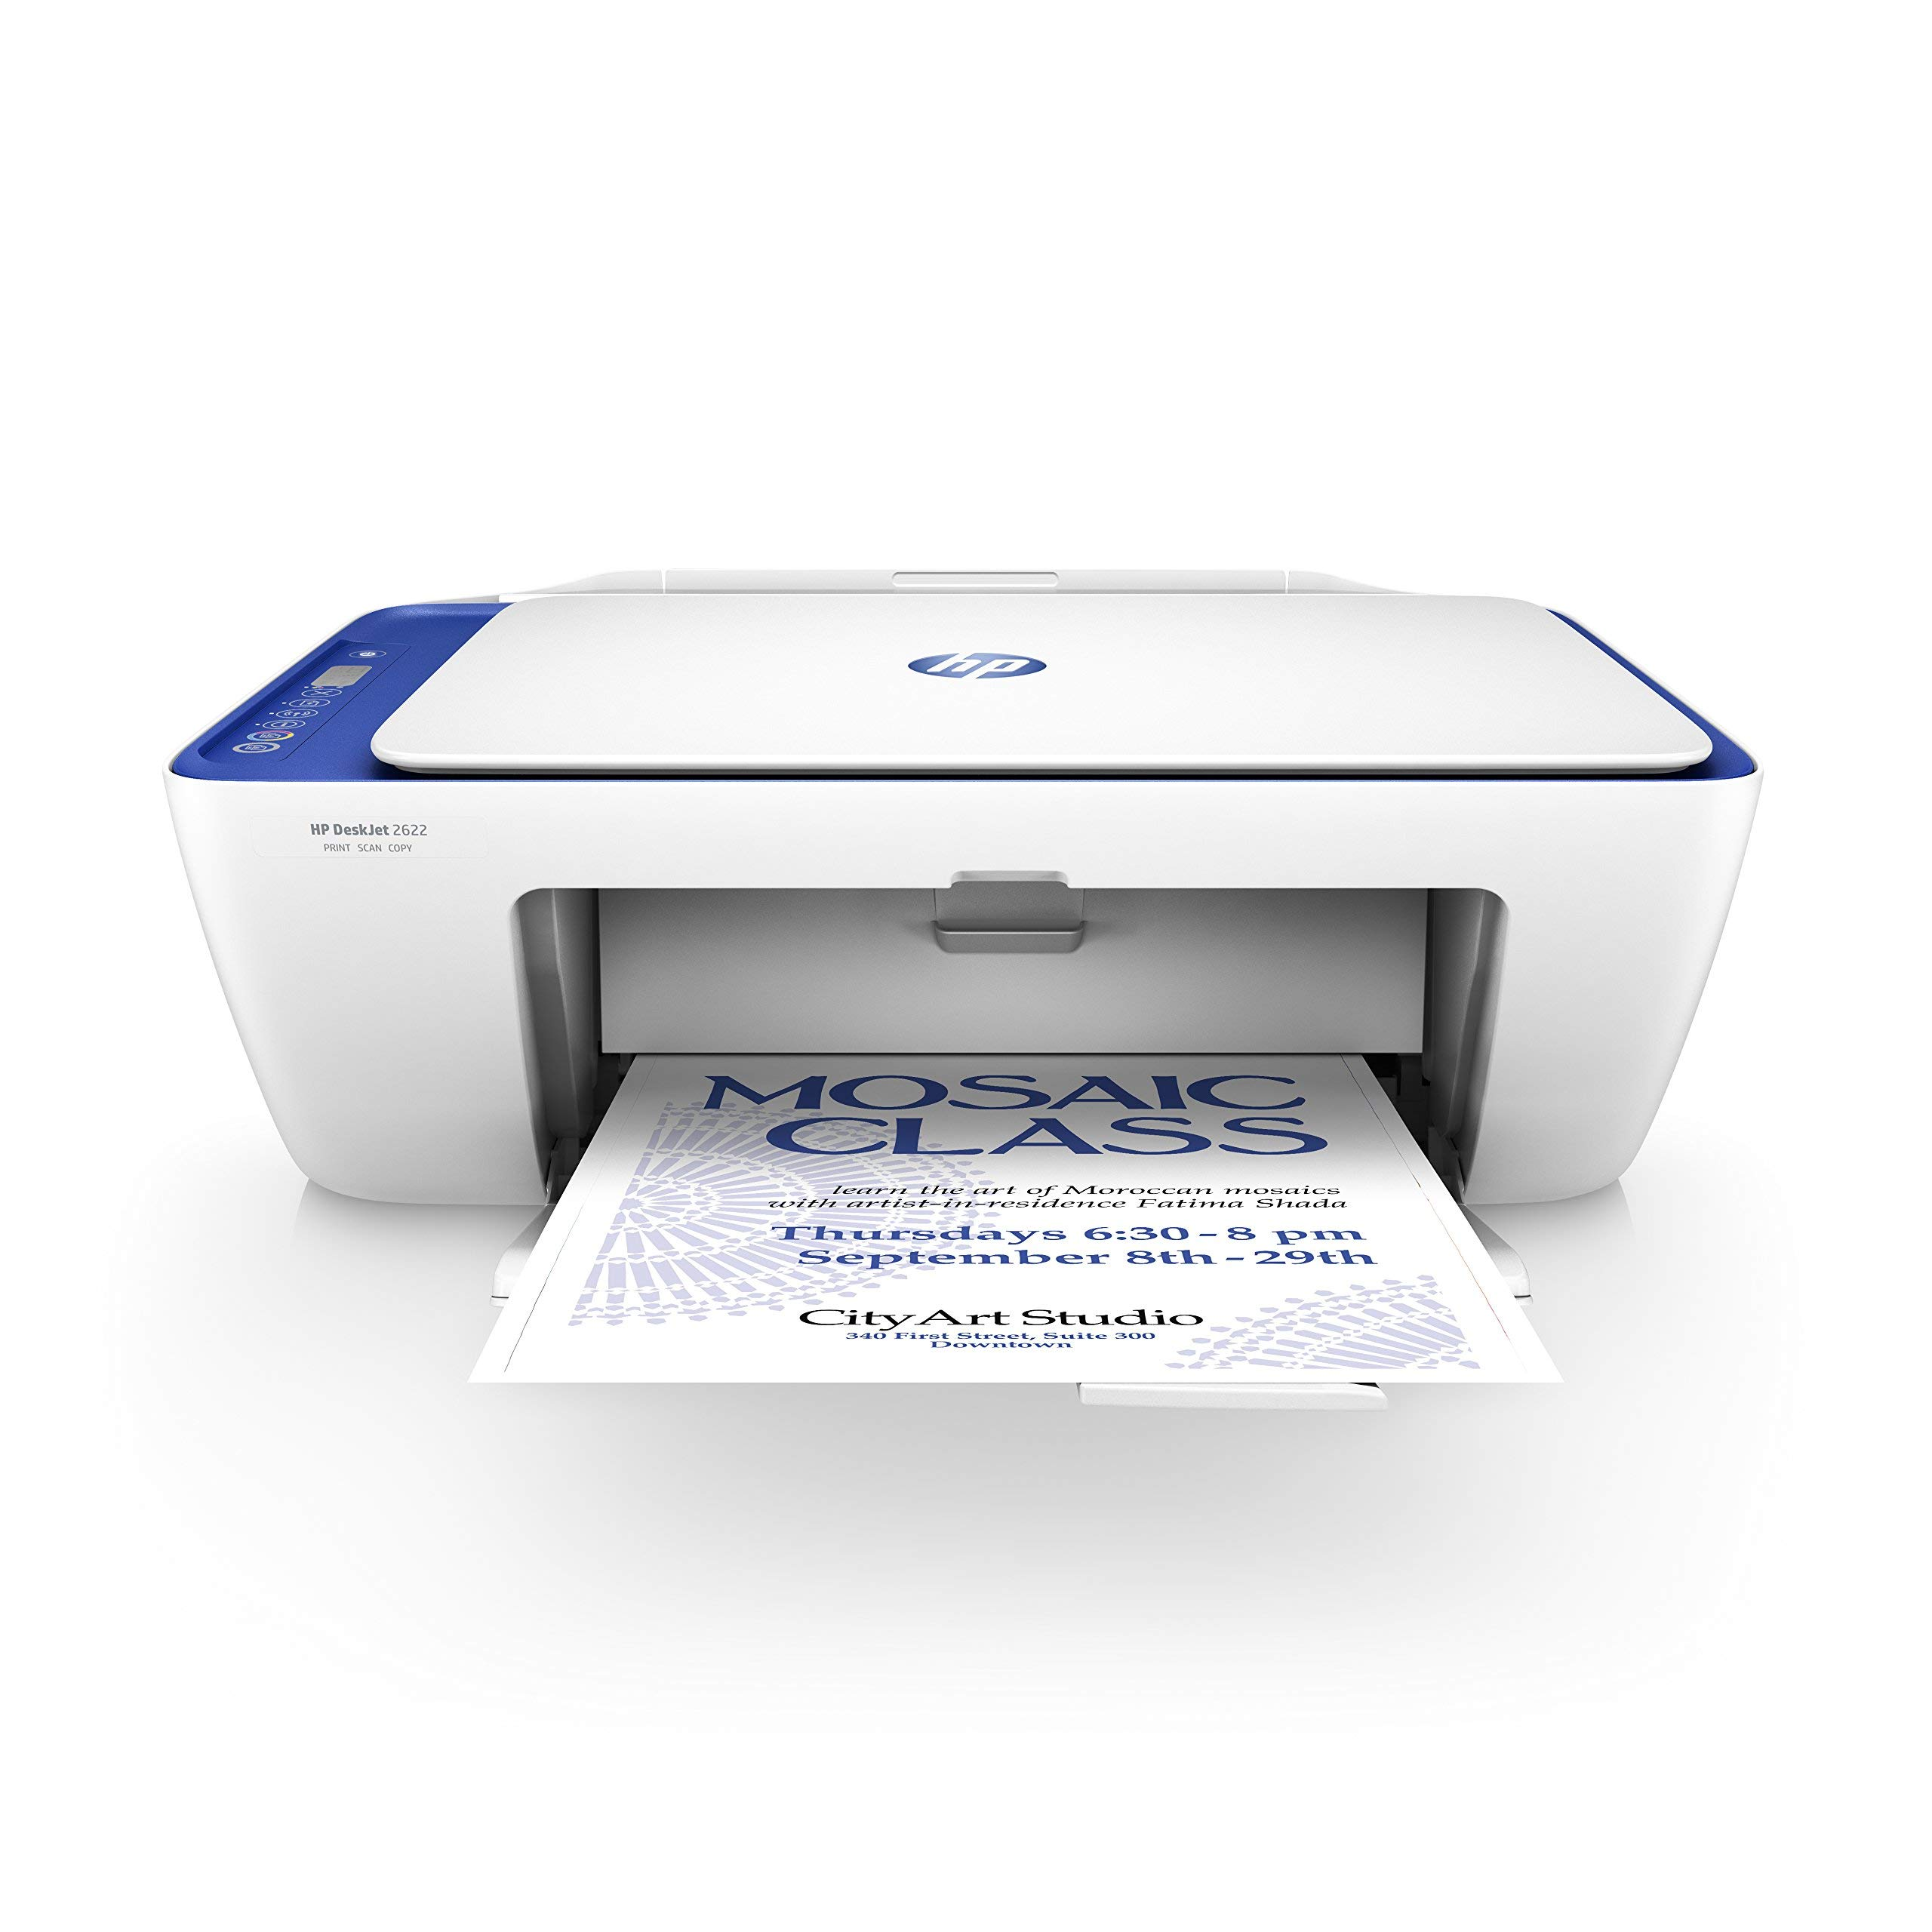 HP DeskJet 2622 All-in-One Compact Printer (Blue) (V1N07A) (Renewed) by HP